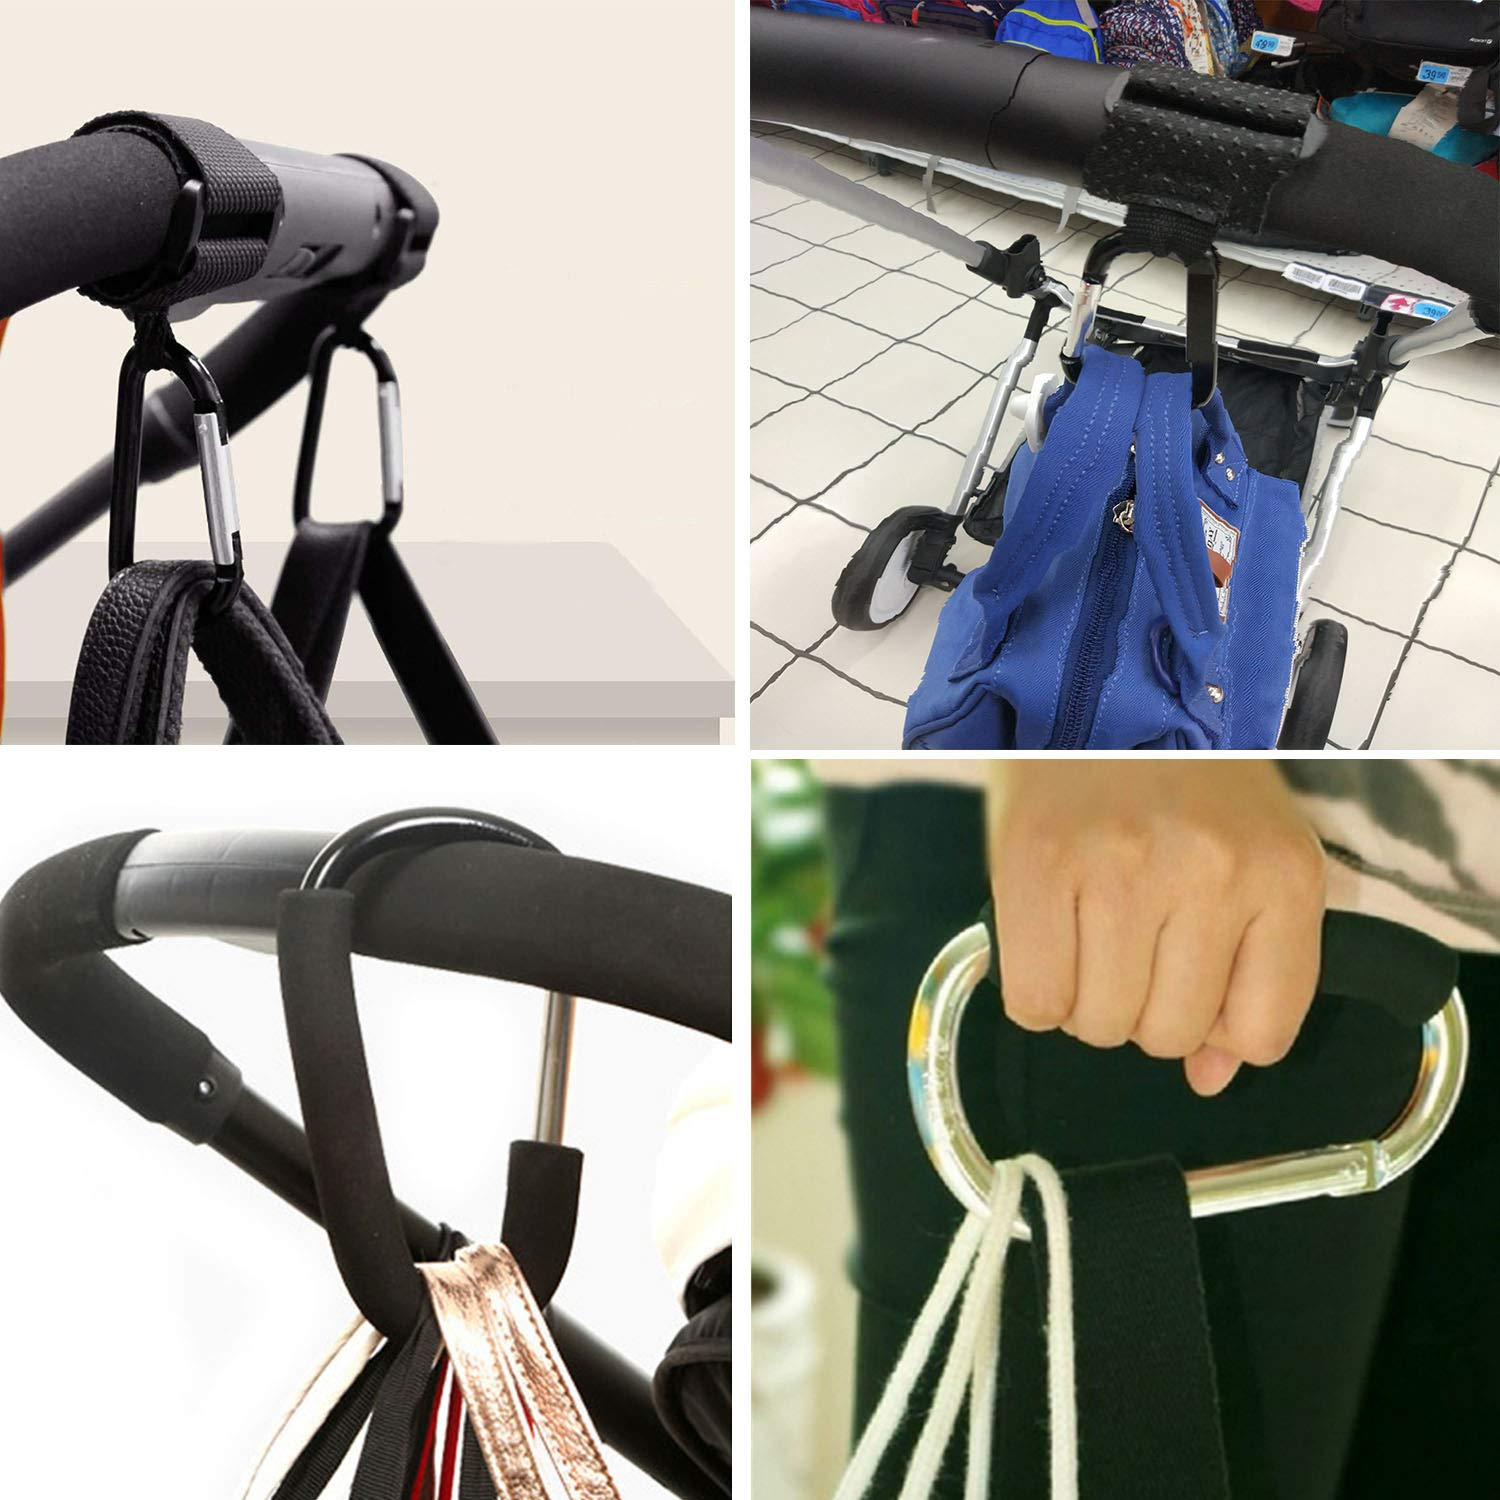 4 Pack Strap Hooks and X-Large Stroller Organizer Hook Clip for Purse Shopping /& Diaper Bags Stroller Hooks